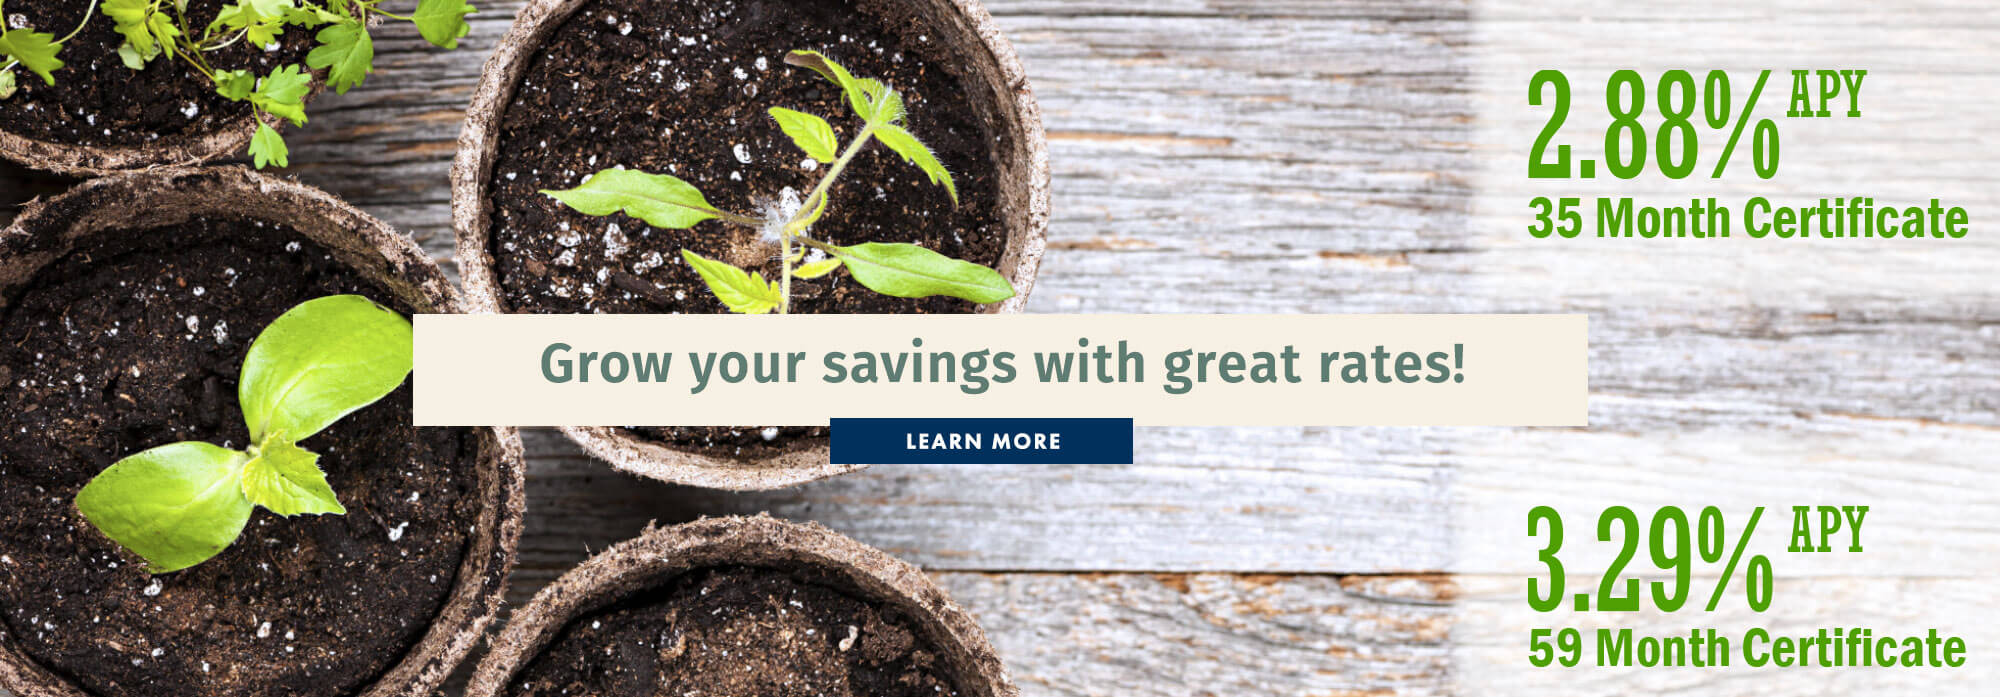 Grow your savings with great rates!